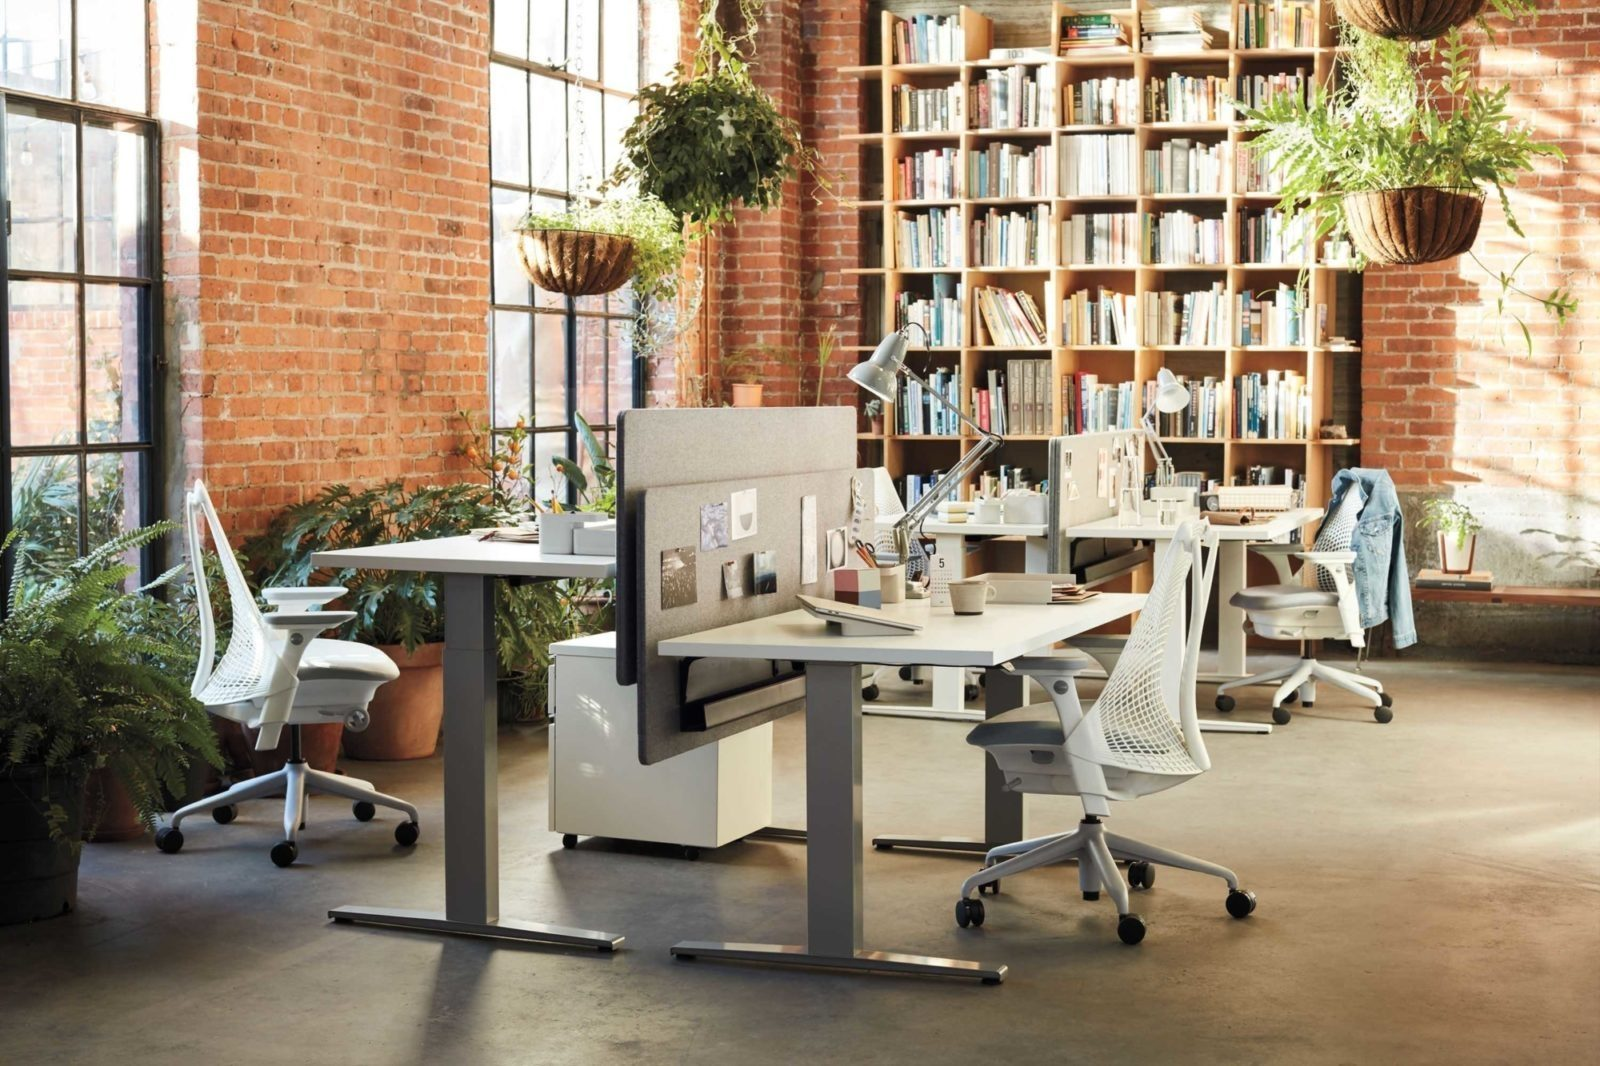 herman miller professional desk and chairs